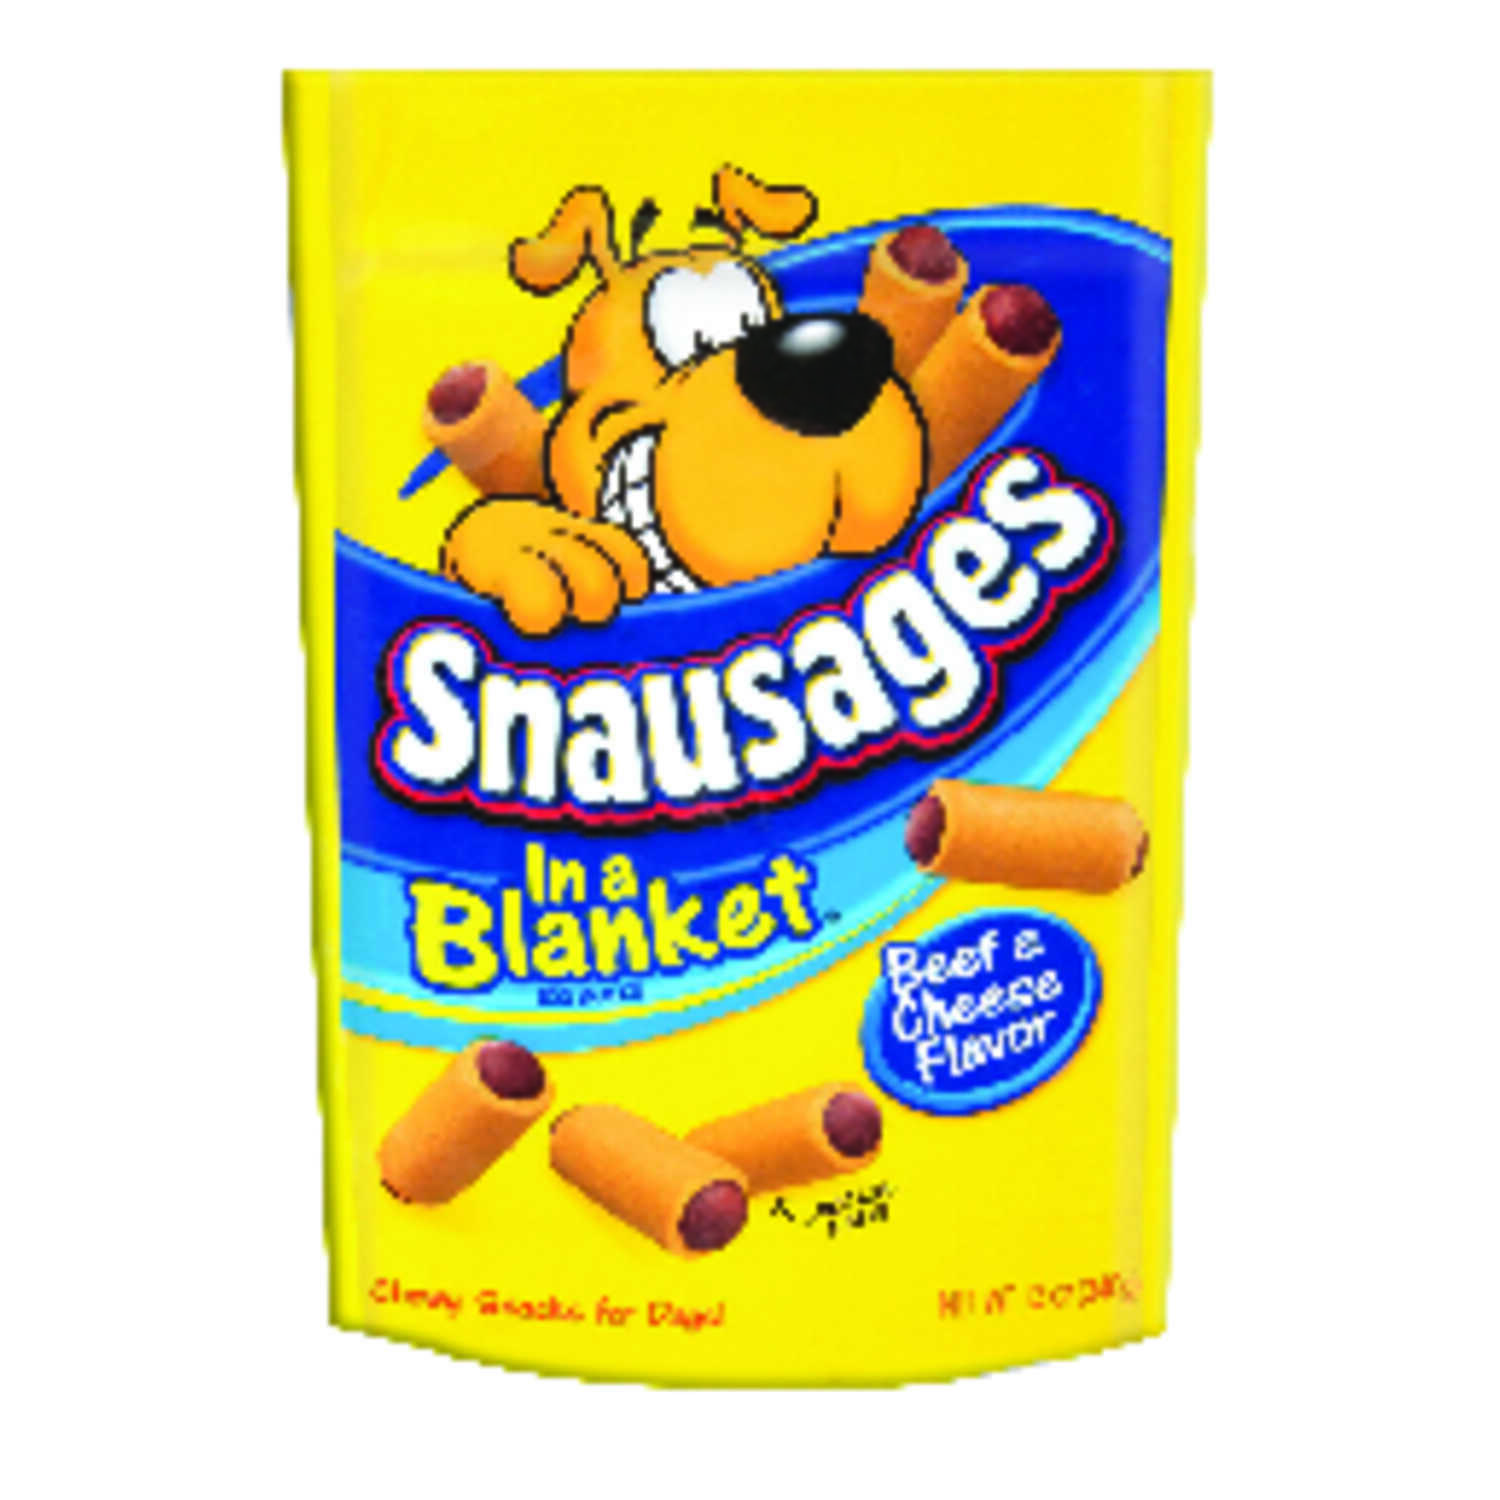 Snausages  In a Blanket  Beef and Cheese  Dog  Sausage Treat  1 pk 12 oz. 12 oz.